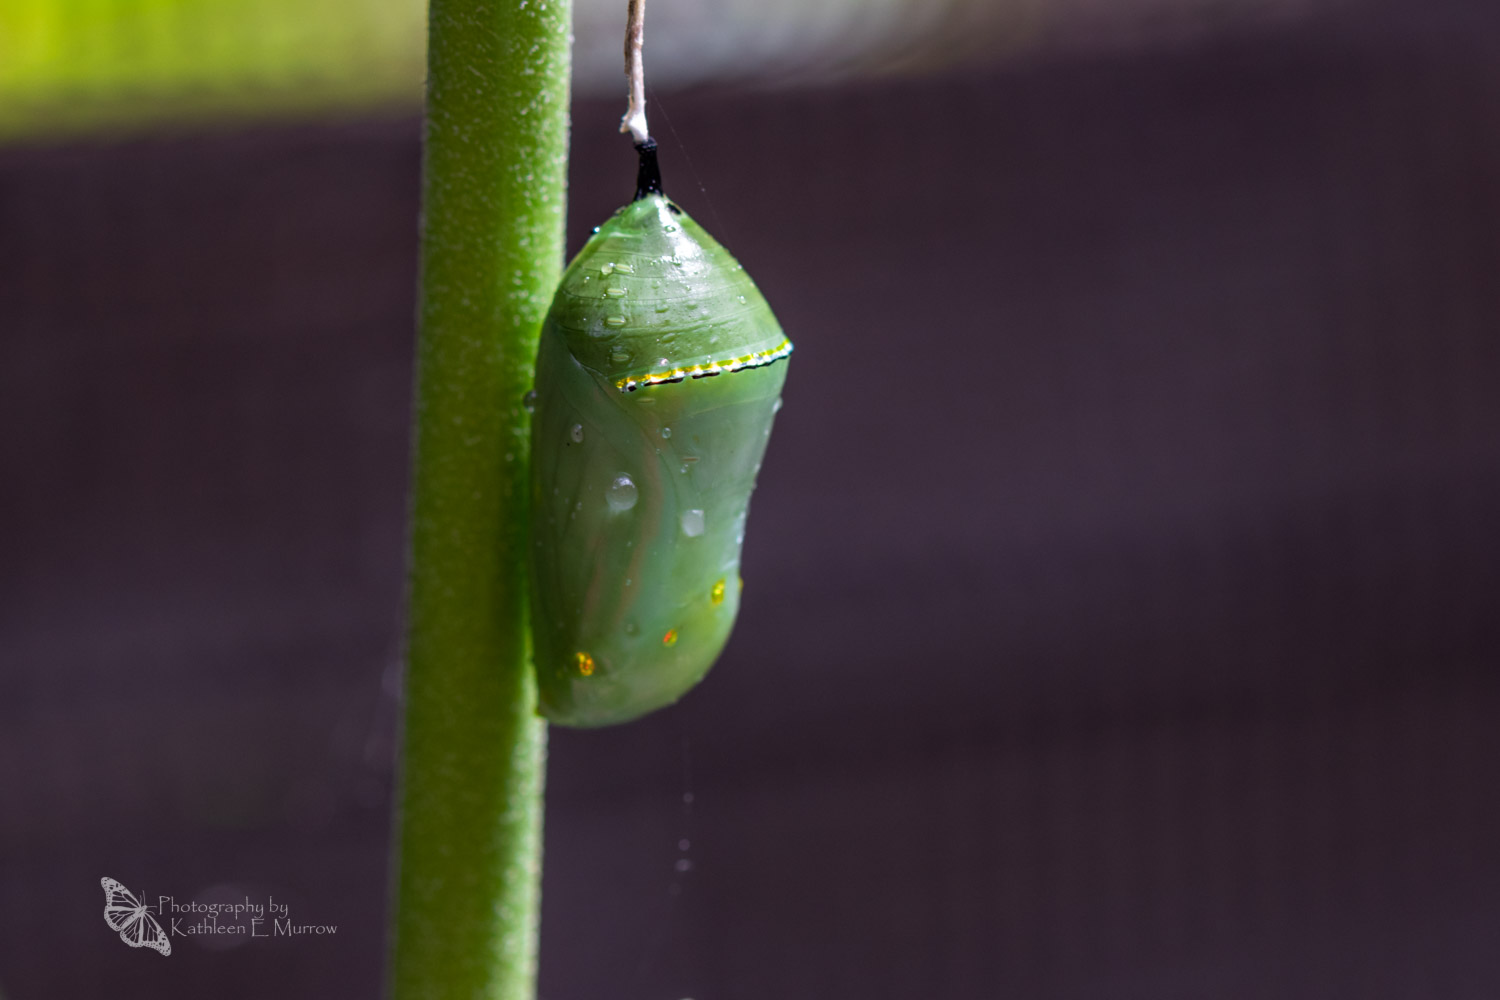 A green and gold chrysalis of the monarch butterfly, with details visible and water droplets on its surface